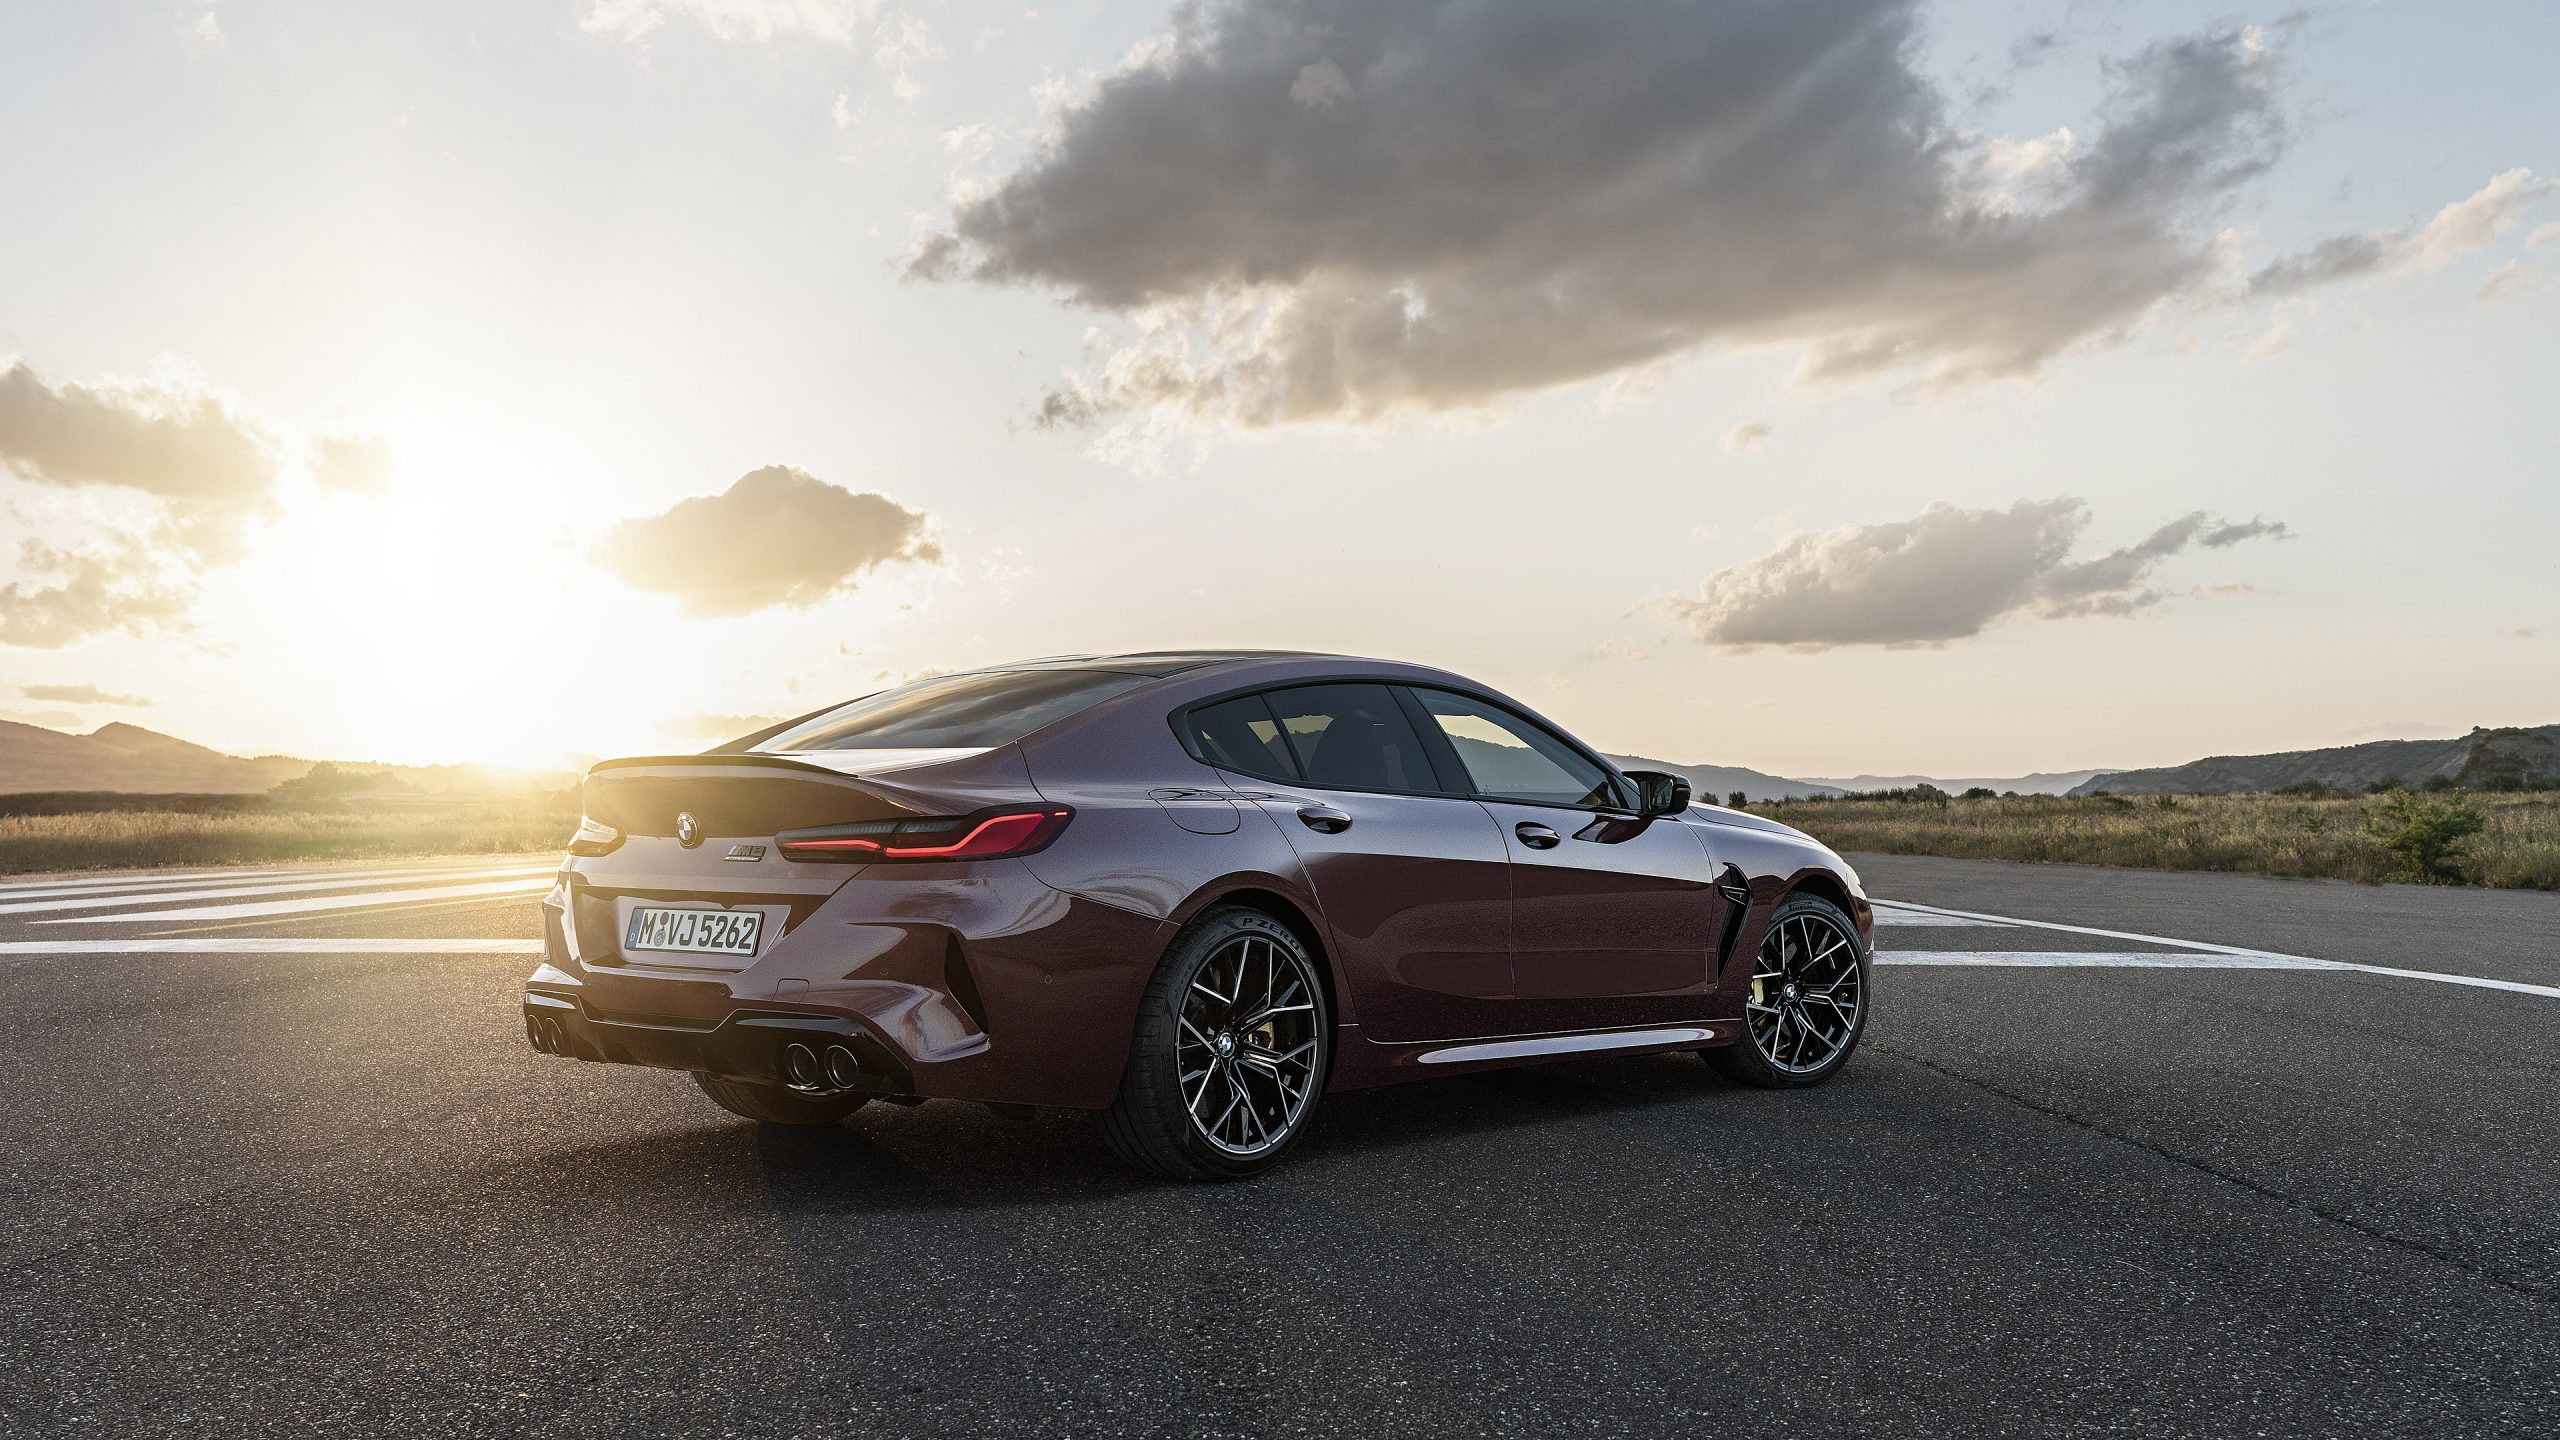 2020 BMW M8 Competition Wallpapers   SuperCars.net